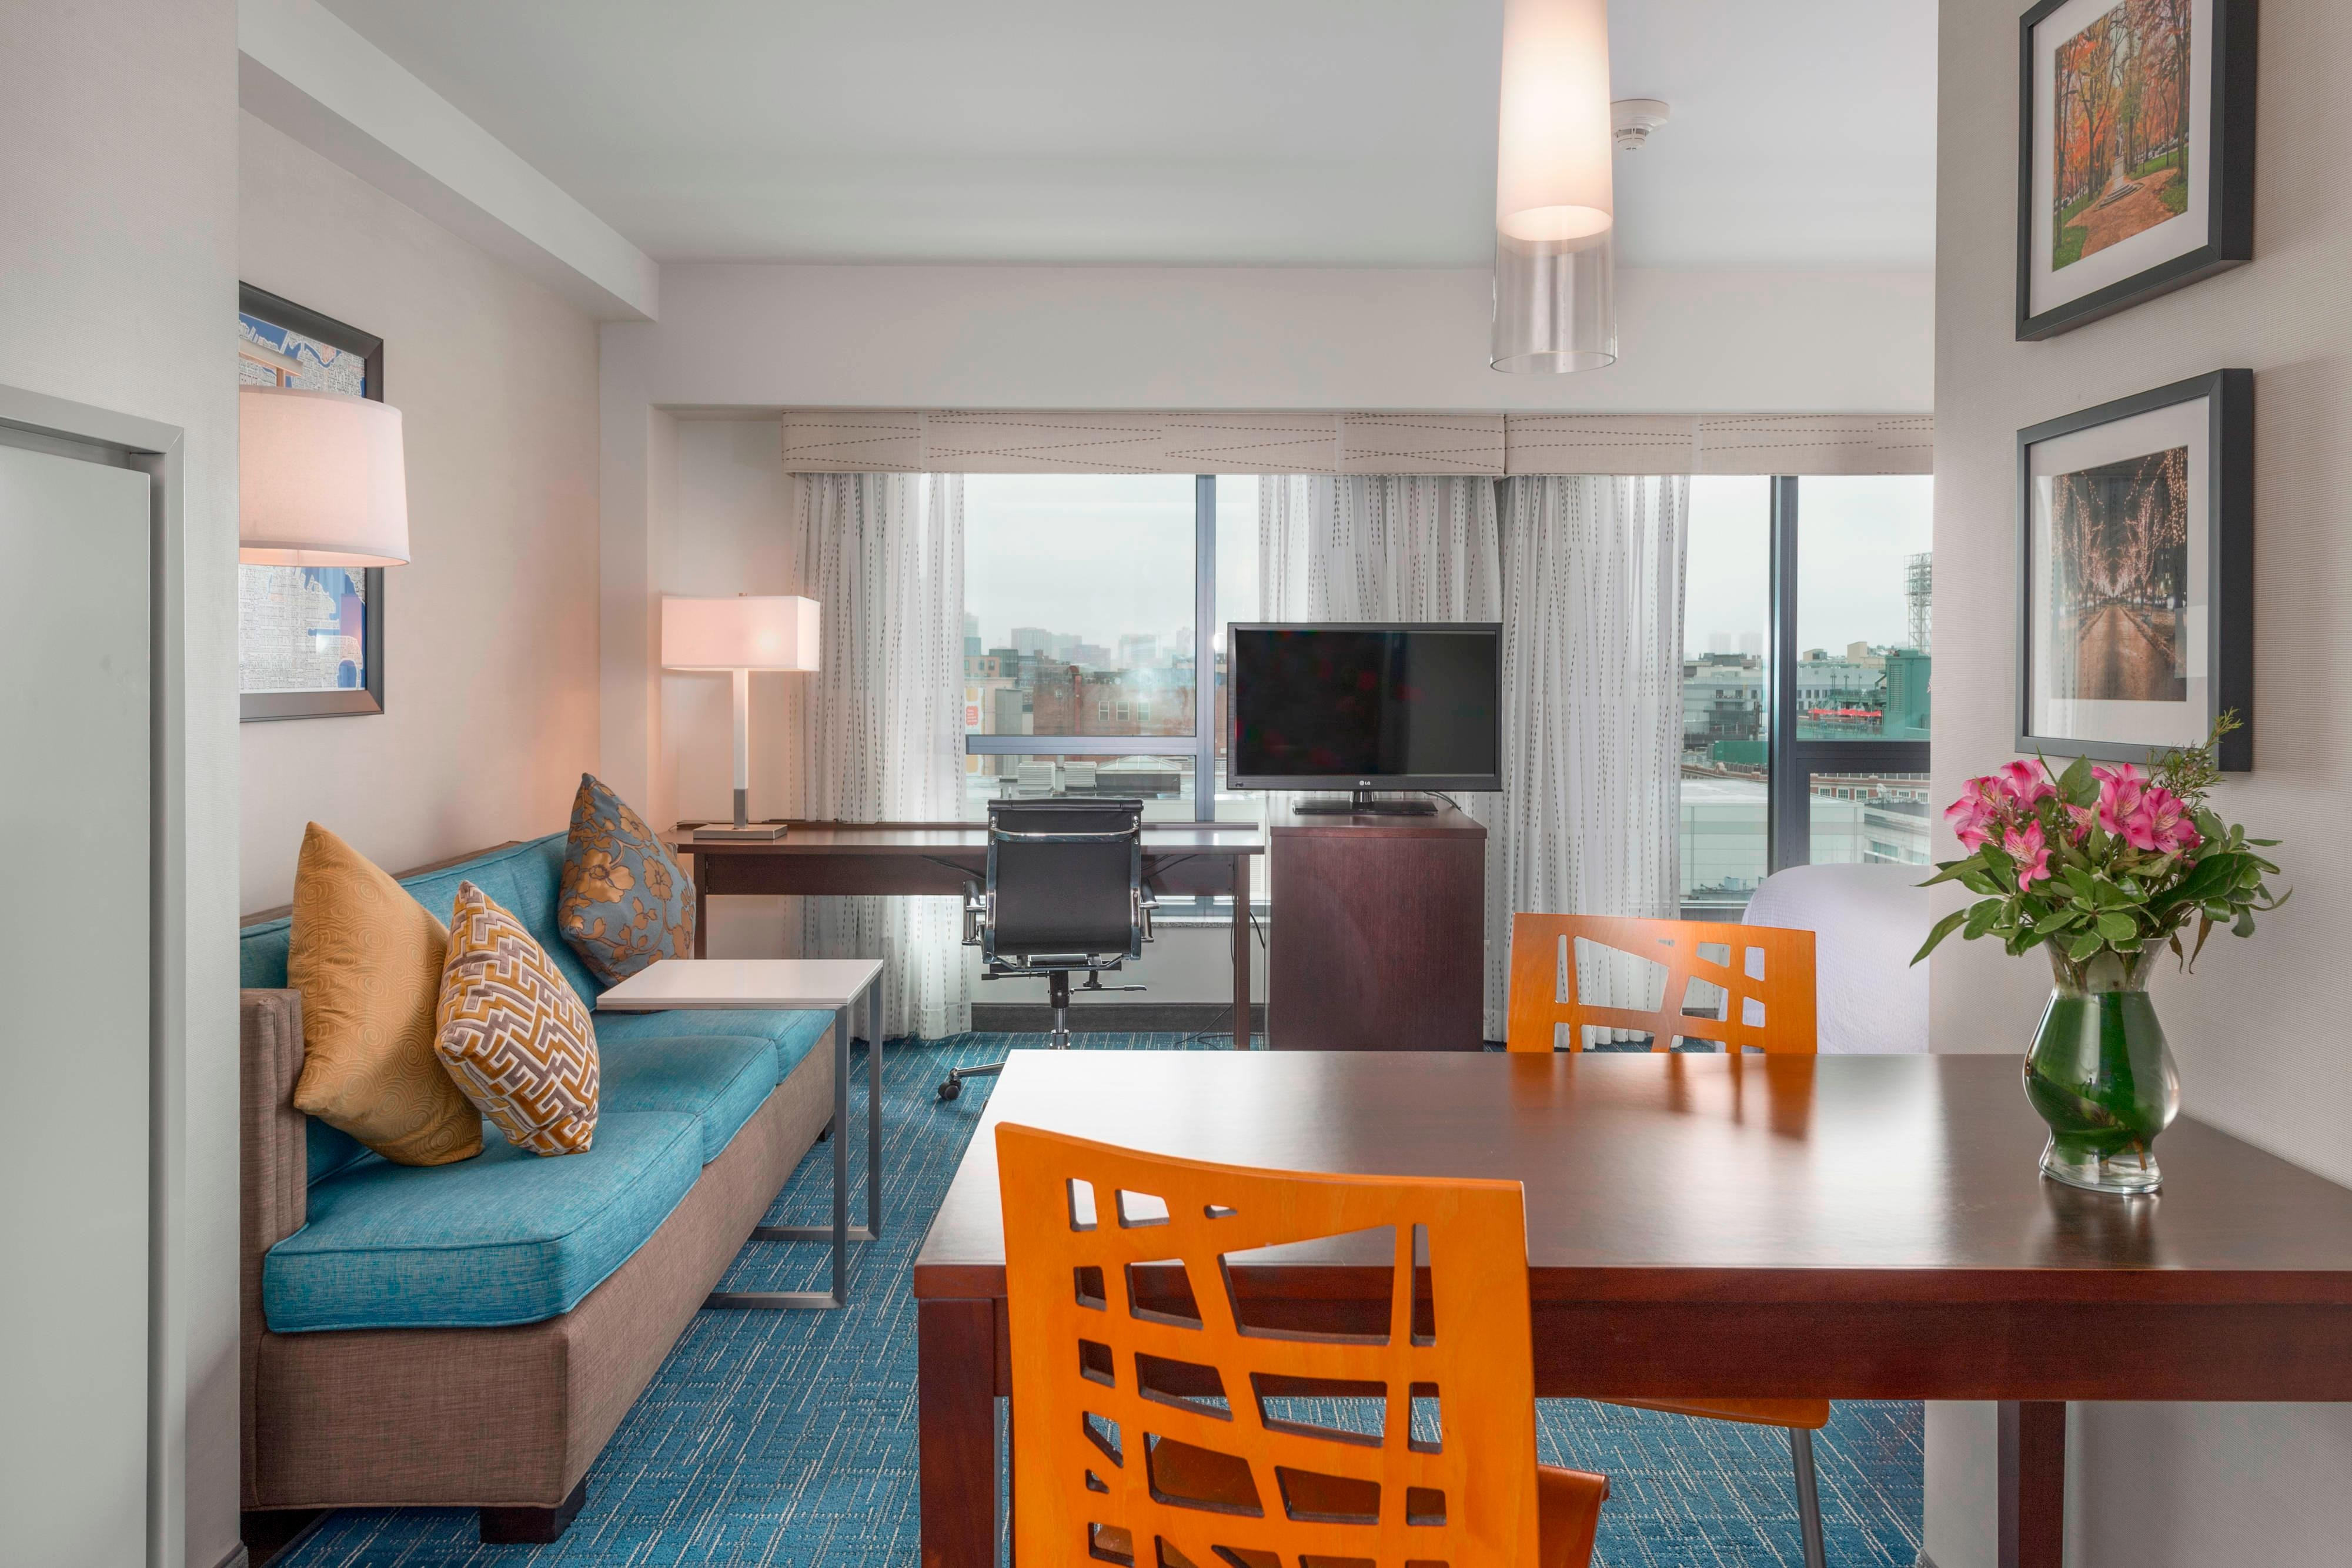 hotel hotels rooms clsc nc new research suites residence park in suite hor orleans bedroom triangle inn durham rdudr